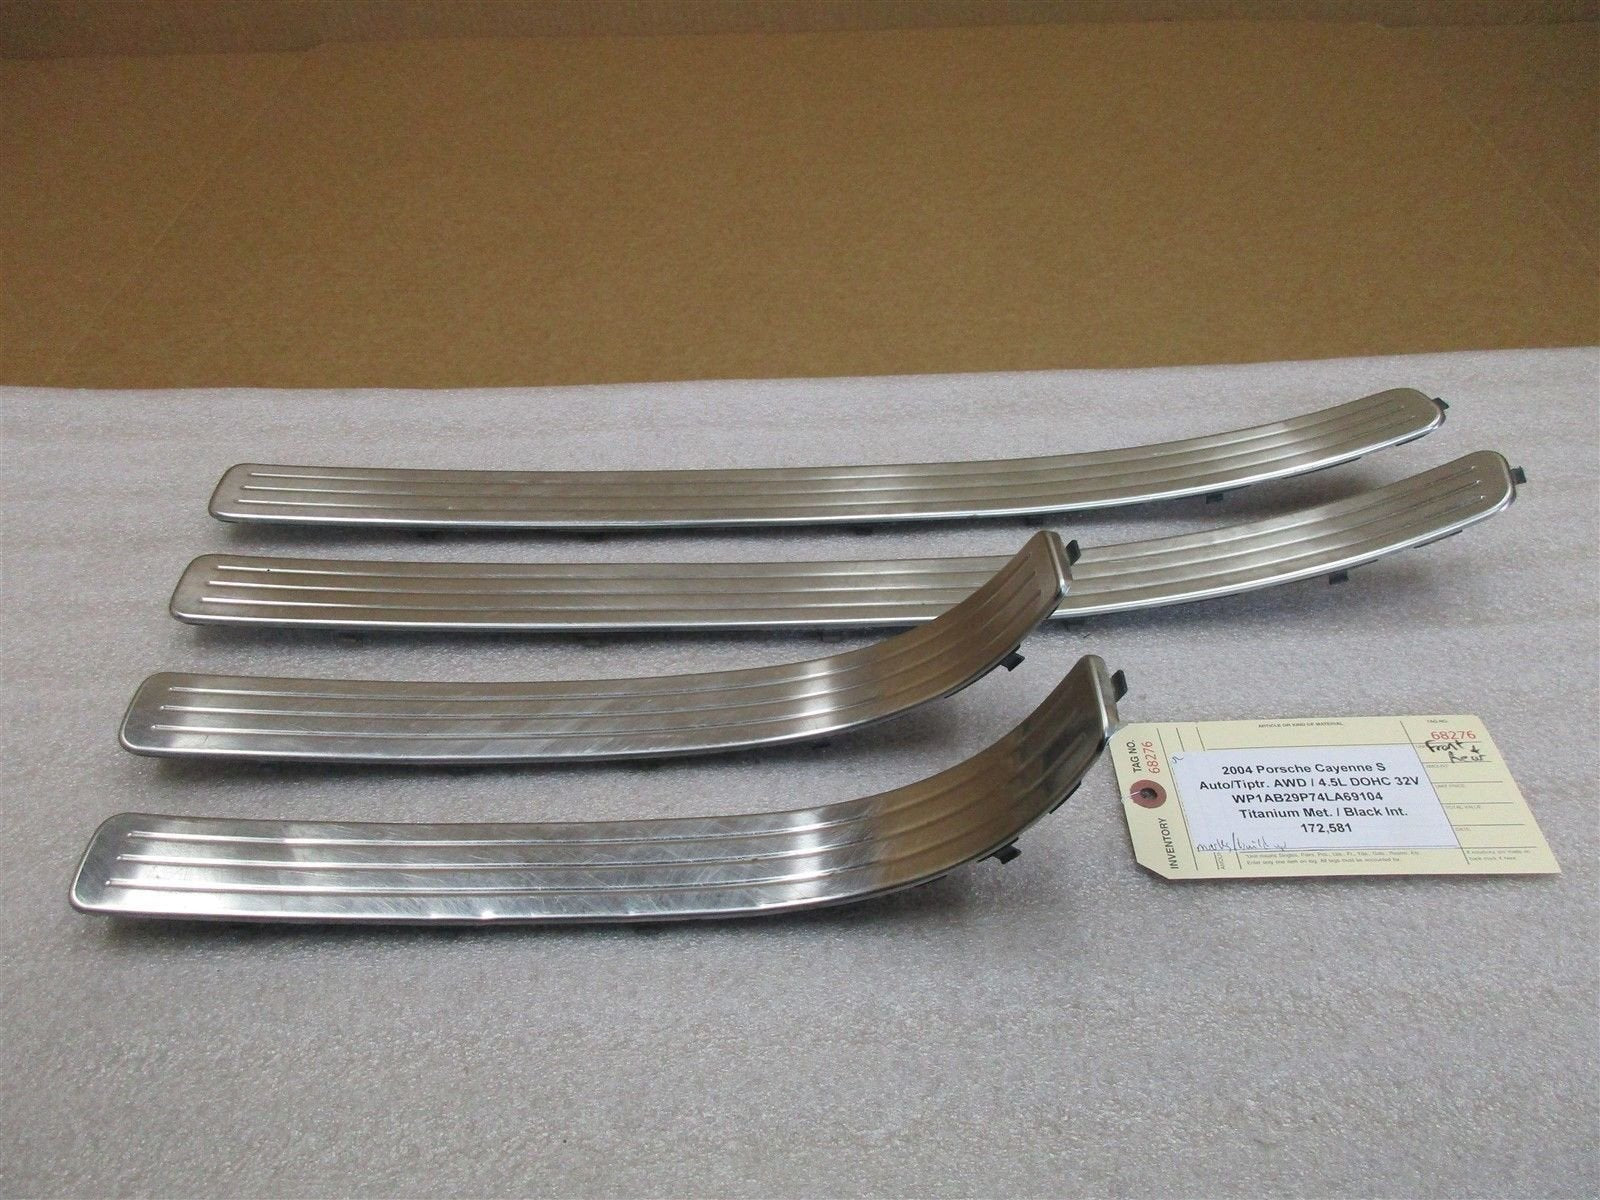 04 Cayenne S Porsche FRONT REAR DOOR SILL TRIMS 7L0853794A 7L0853793A 172,581